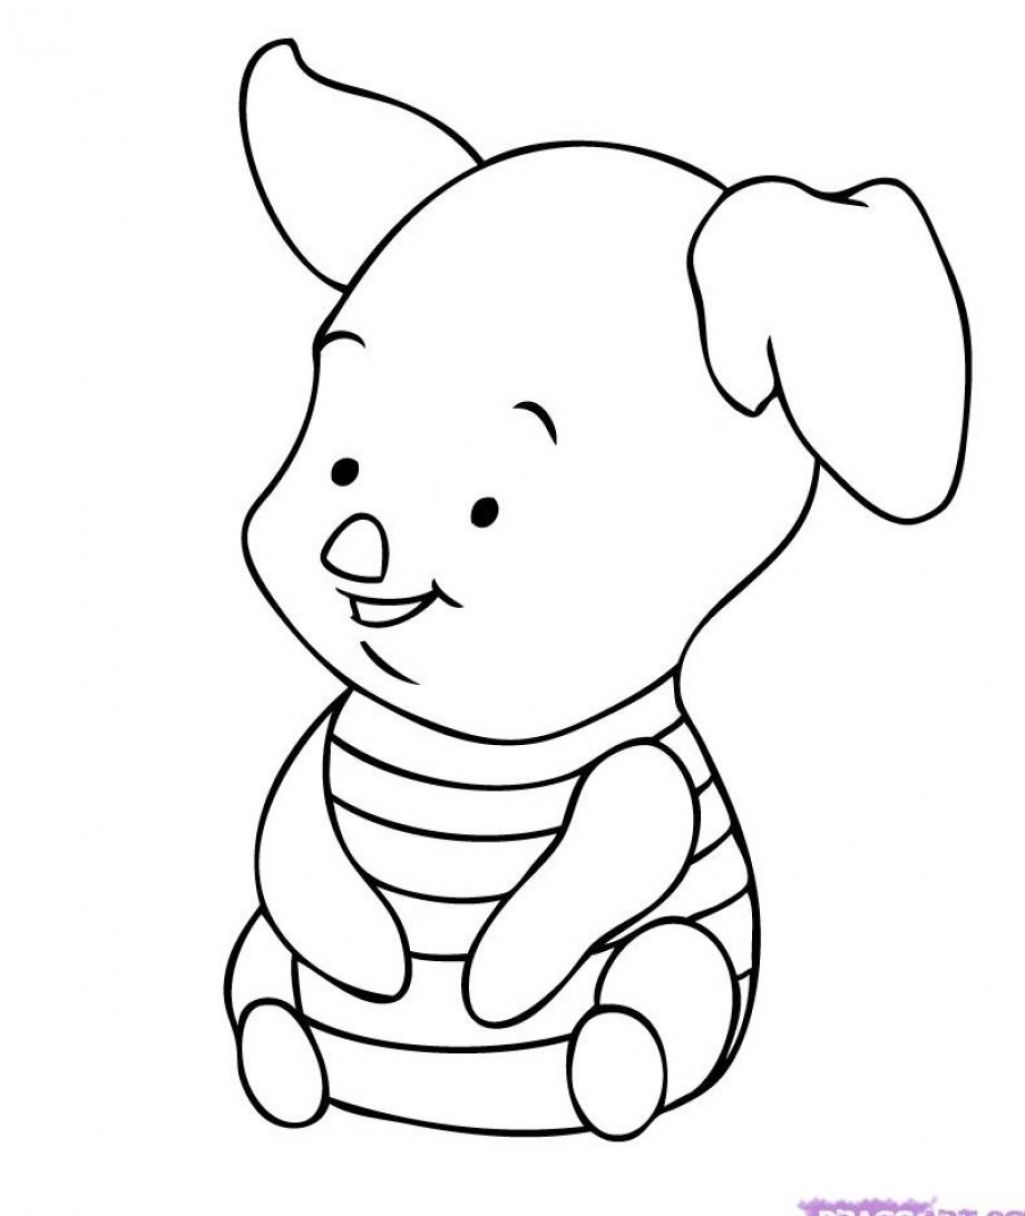 Ba disney characters coloring pages printable coloring pages